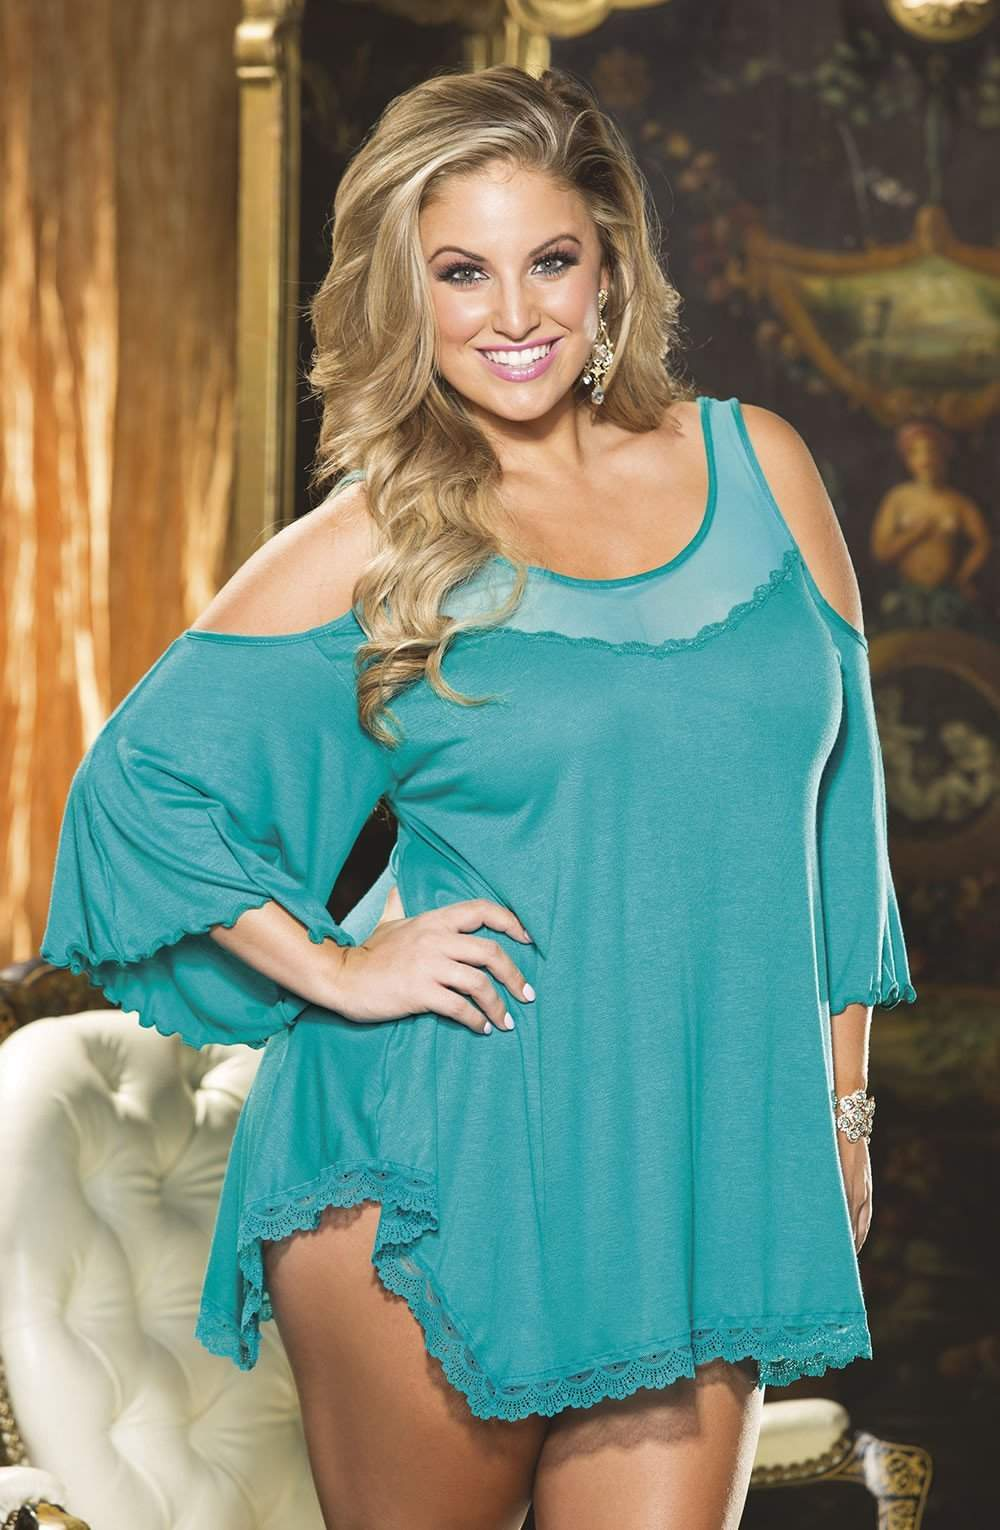 SoH-IA Rayon Jersey Knit Sleepshirt - Teal - Shirley of Hollywood - Katys Boutique Lingerie USA